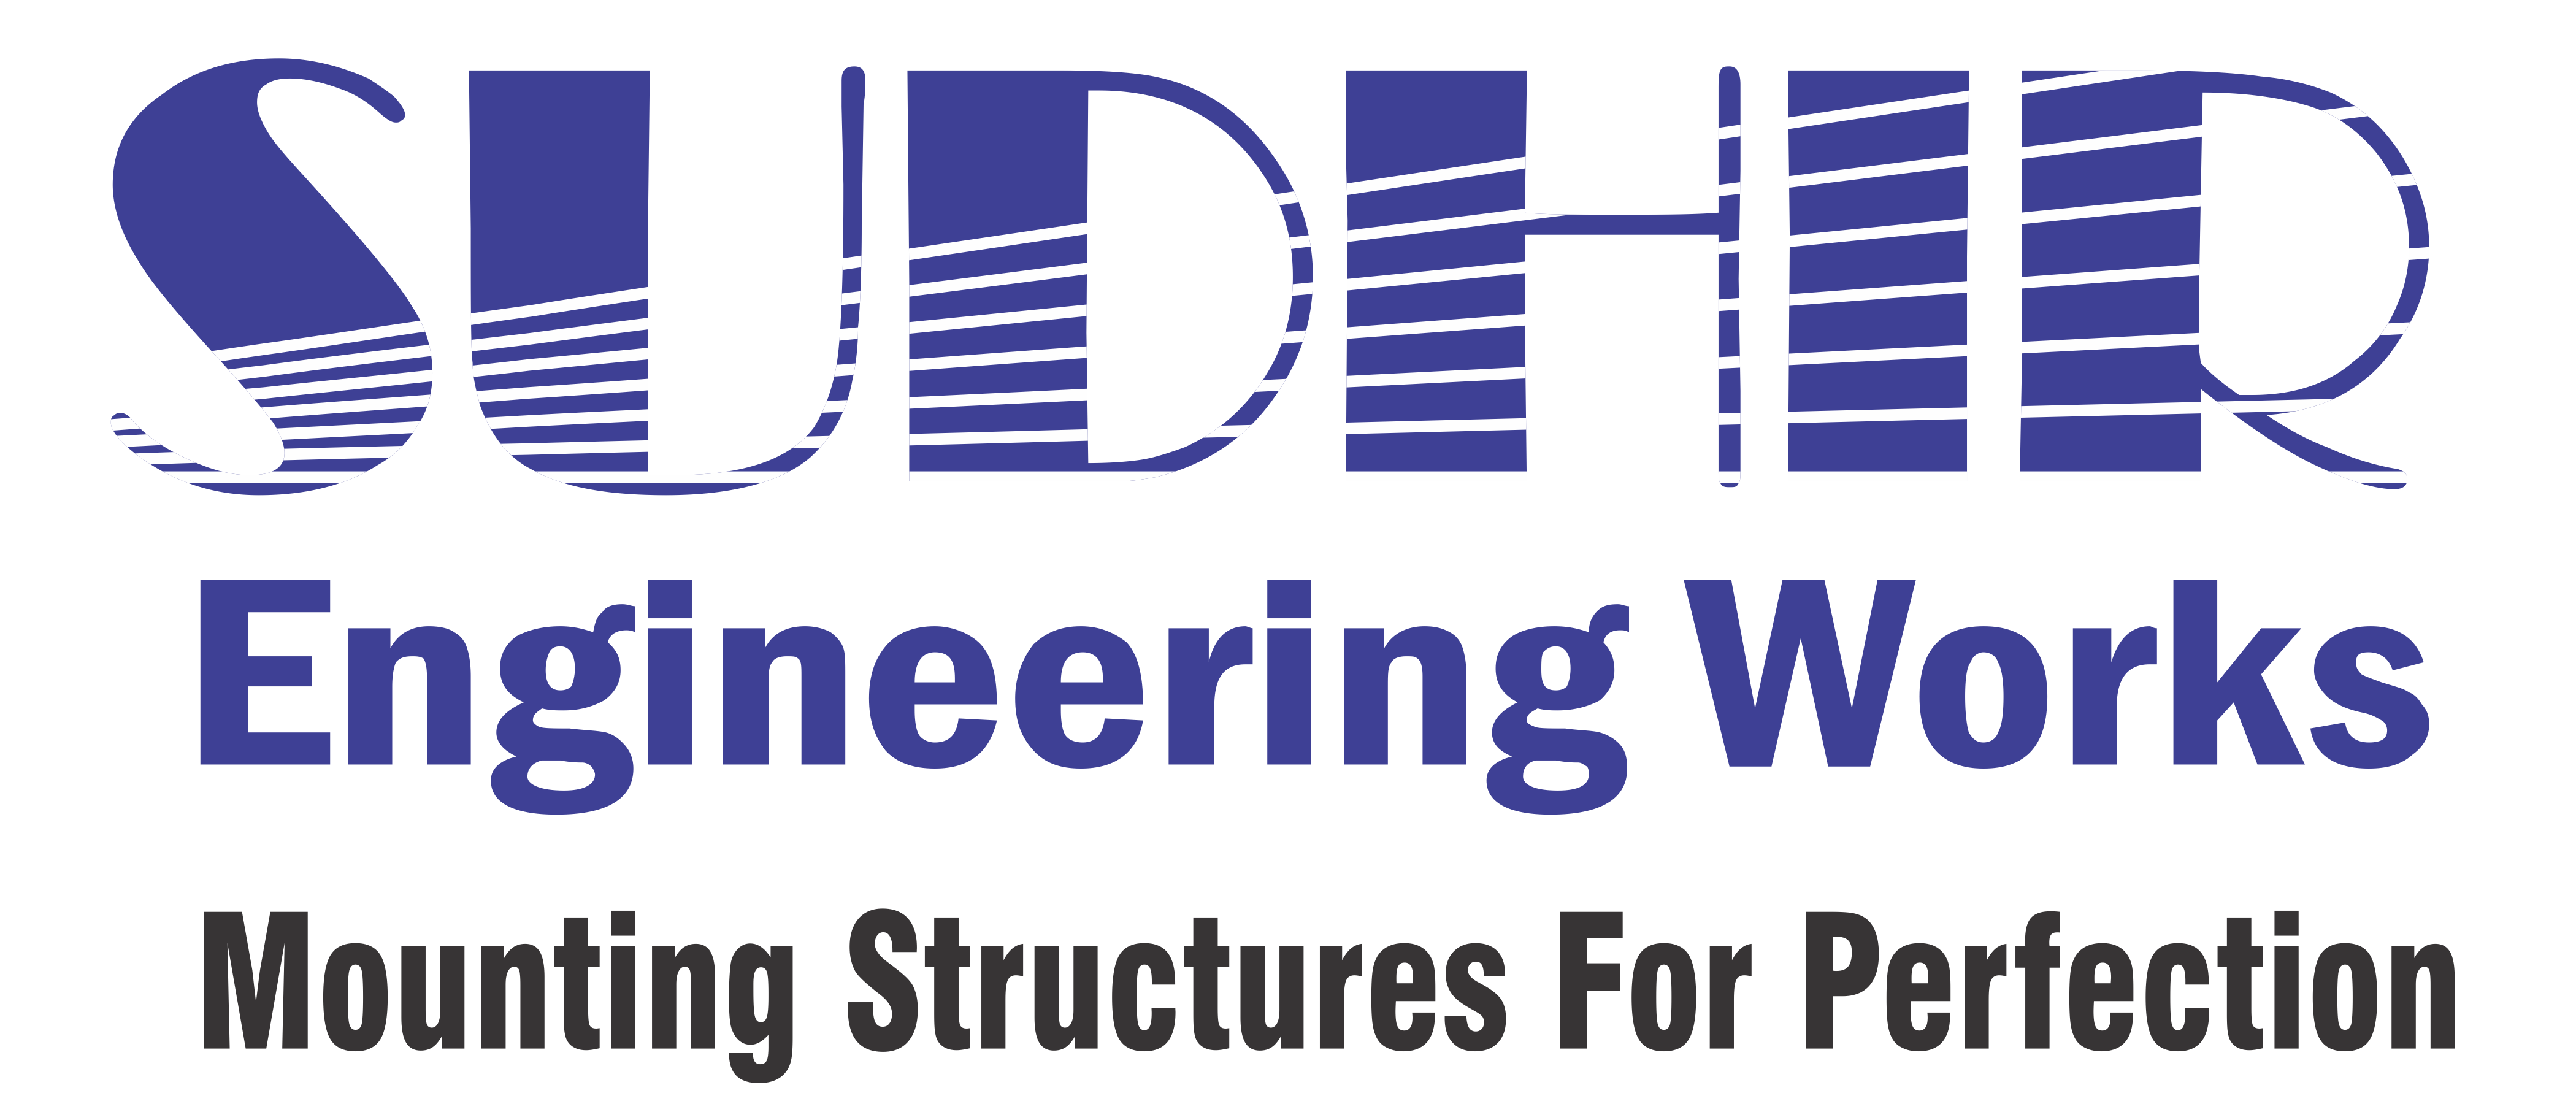 Sudhir Engineering